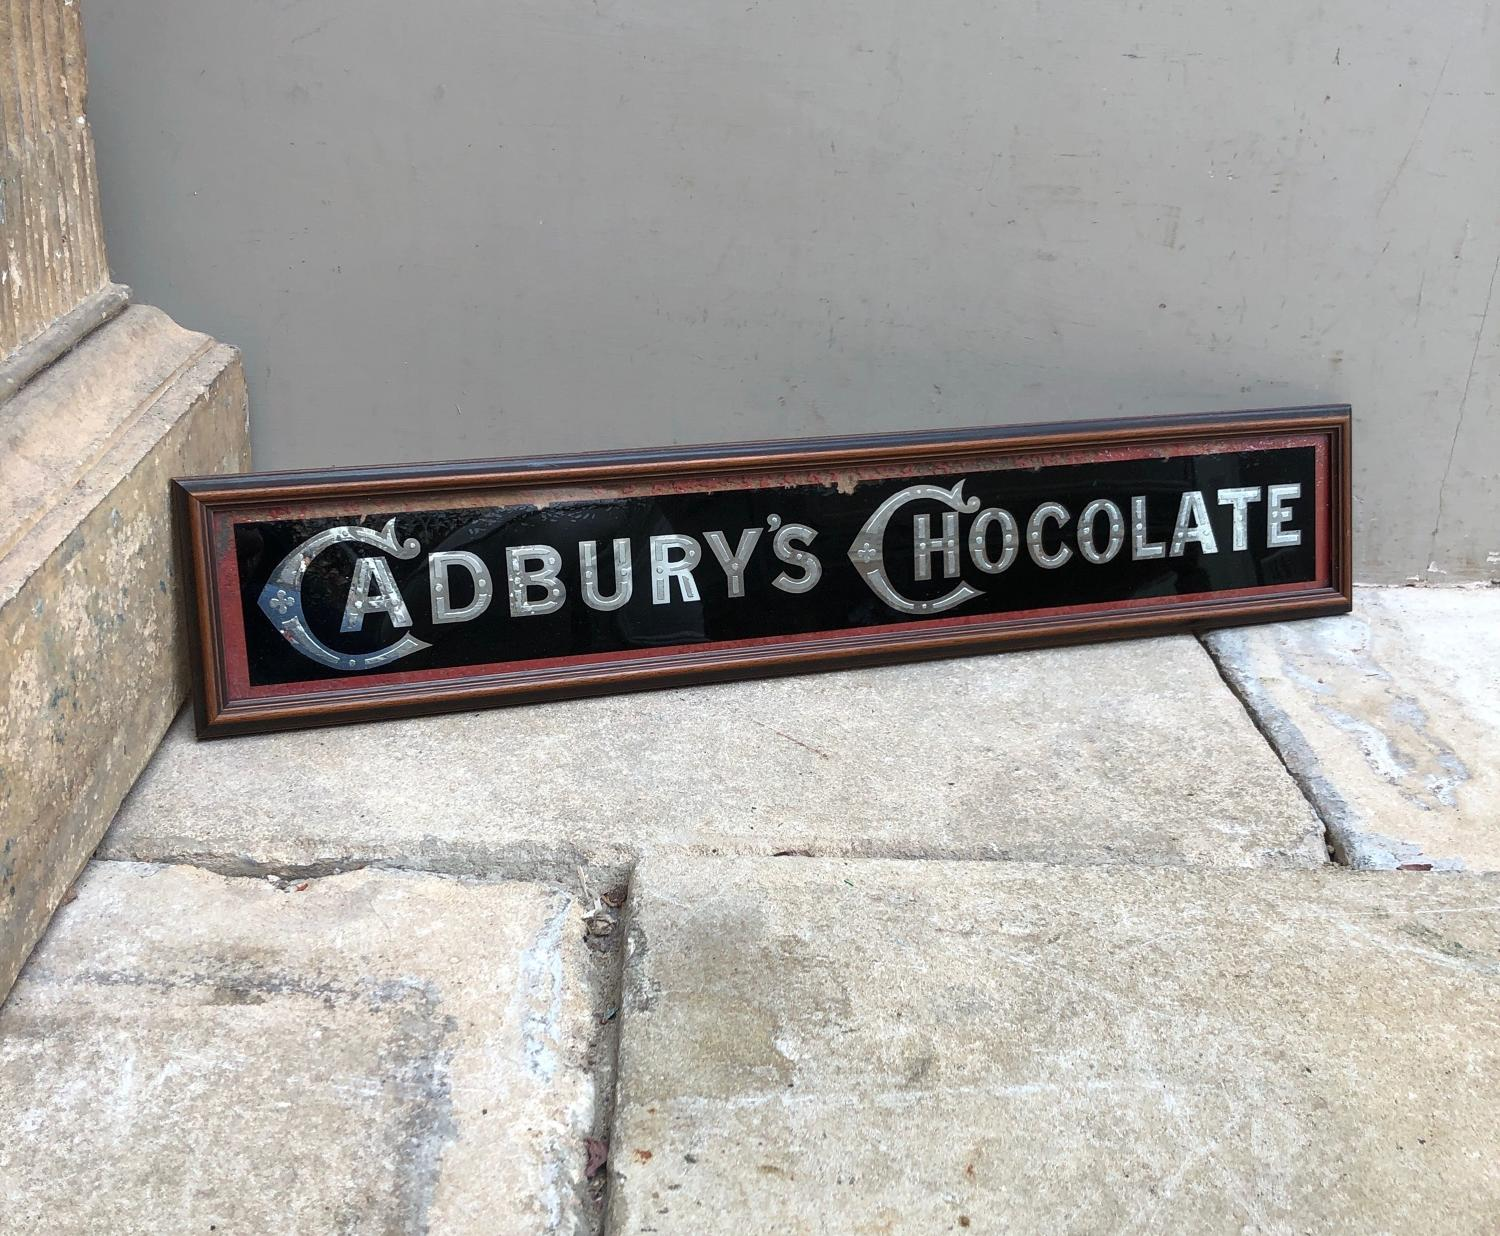 Edwardian Glass Reverse Painted Advertising Sign - Cadburys Chocolate